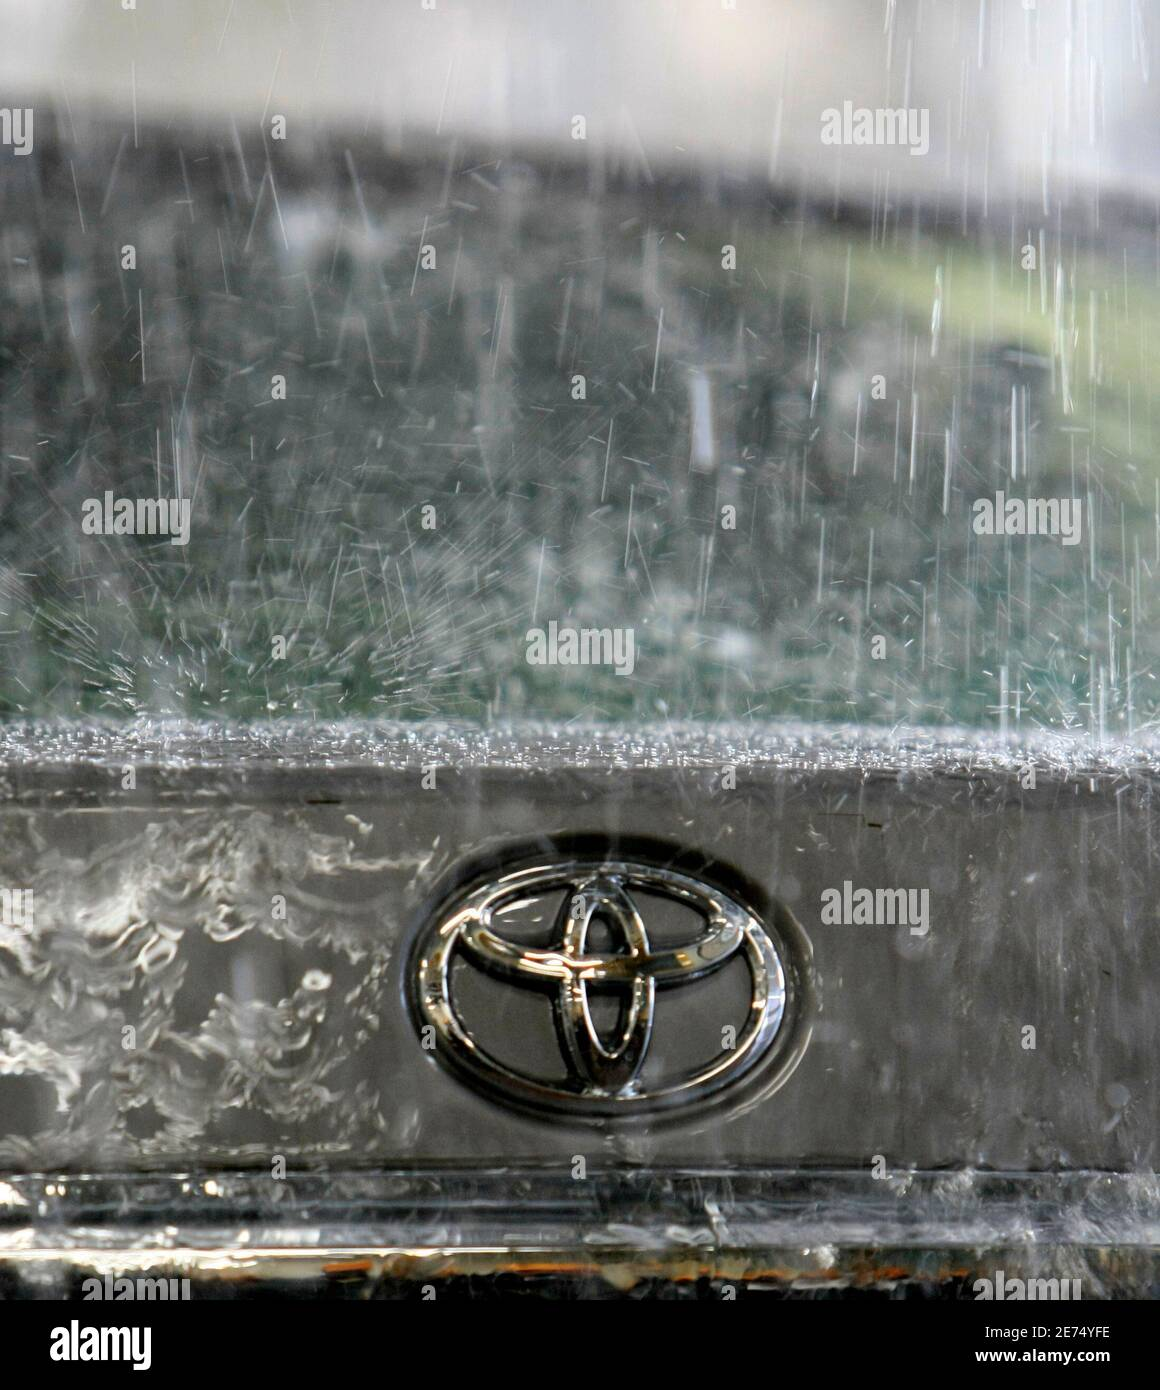 Toyota Motor Corp's logo on a car is seen during a demonstration of the hi-function shower test at its quality control facility in the headquarters in Toyota, central Japan, March 30, 2010.    REUTERS/Kim Kyung-Hoon (JAPAN - Tags: TRANSPORT BUSINESS) Foto de stock